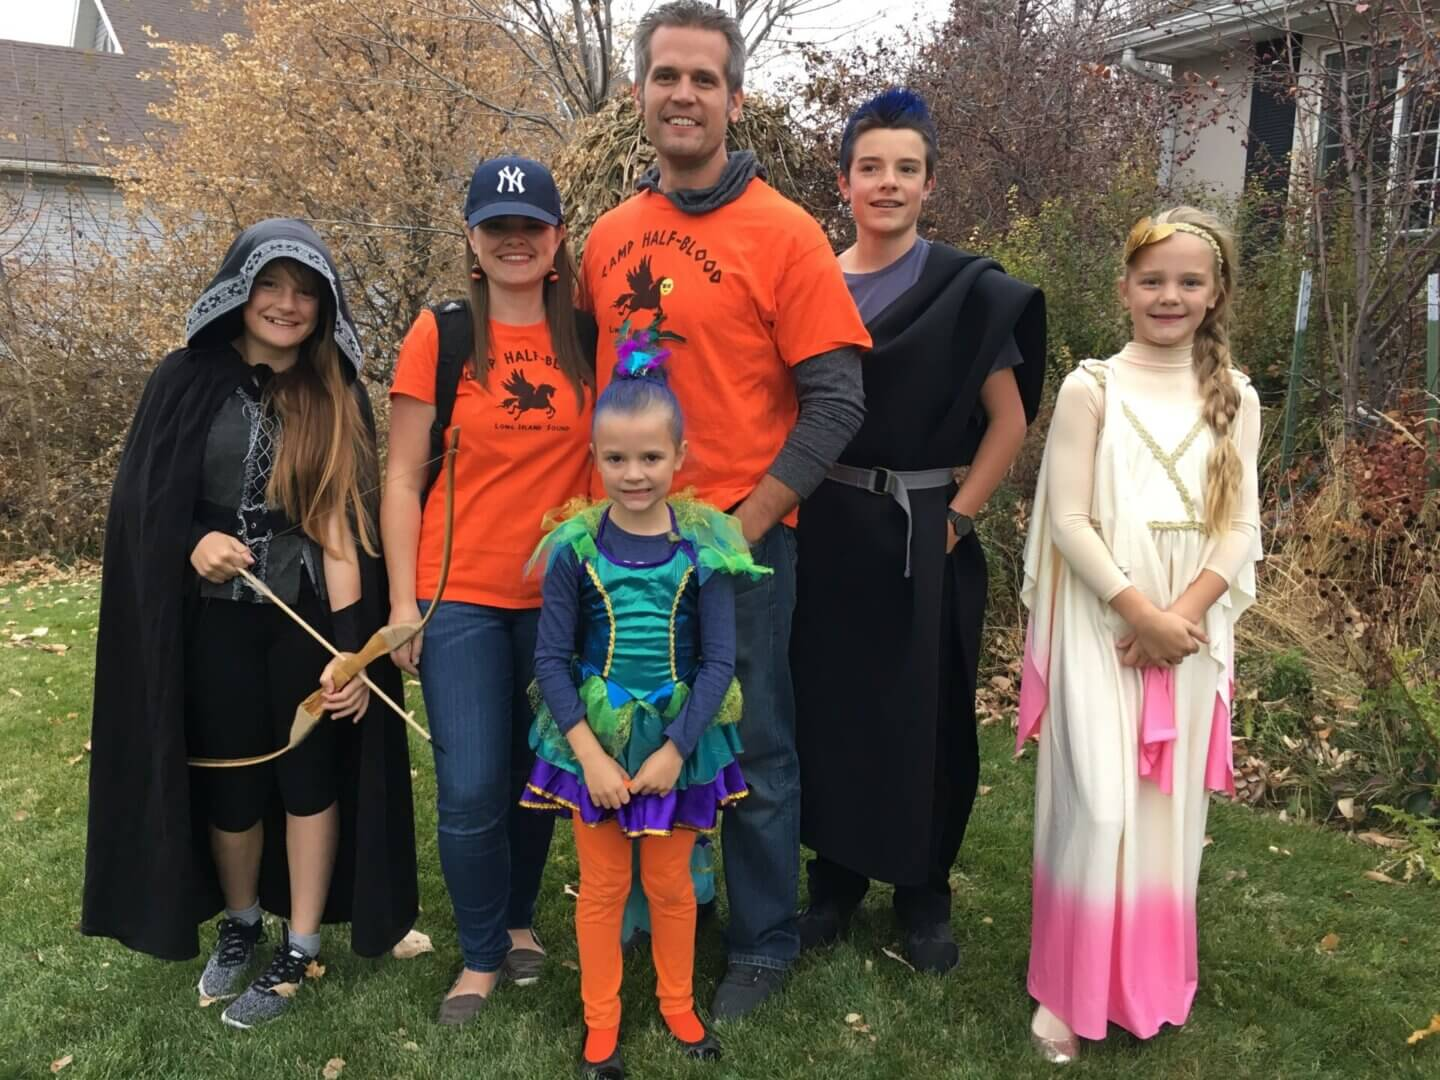 Percy Jackson Halloween Costume Theme